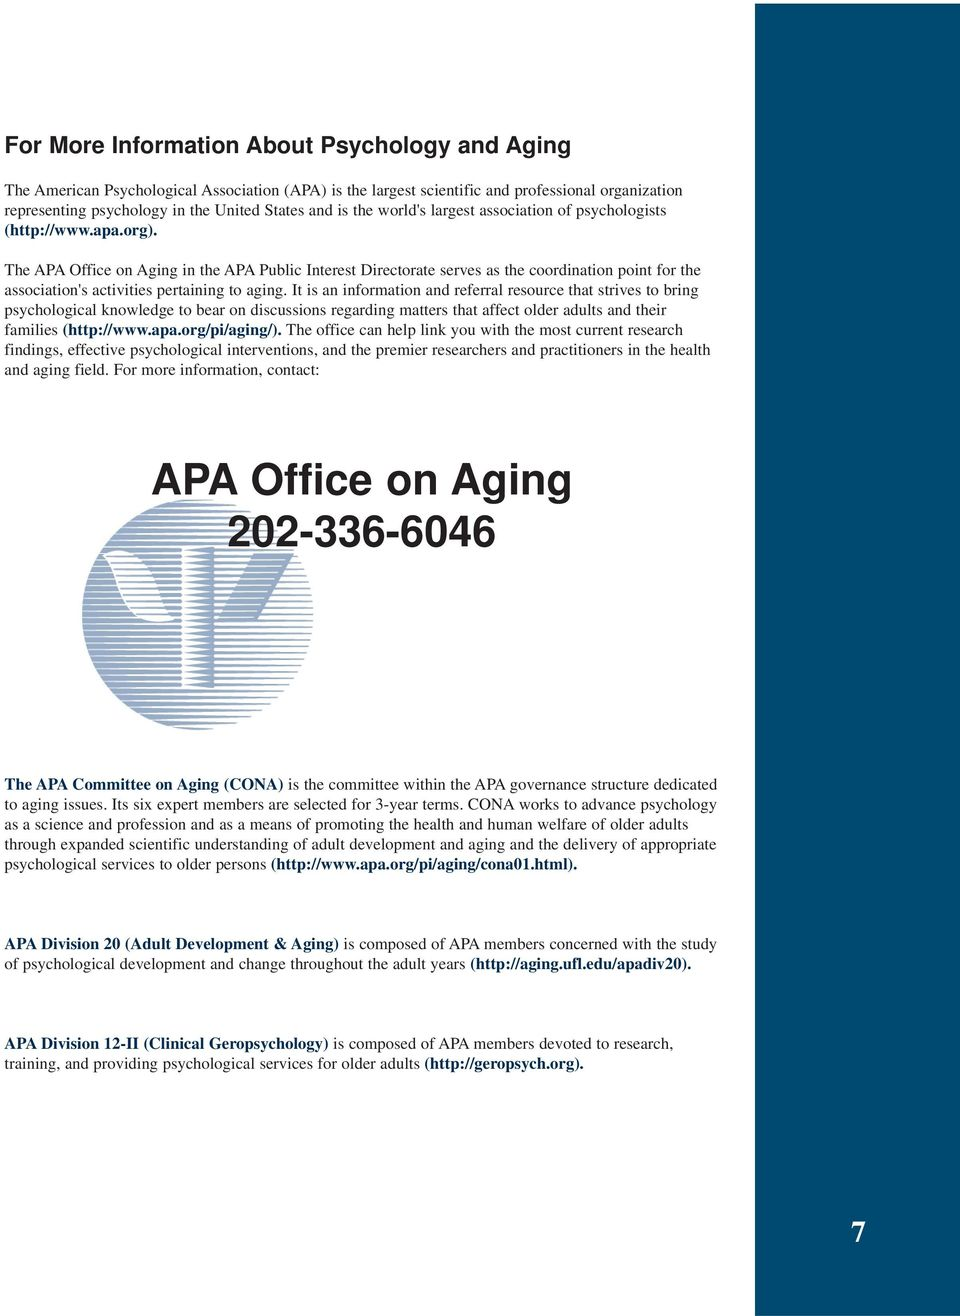 The APA Office on Aging in the APA Public Interest Directorate serves as the coordination point for the association's activities pertaining to aging.